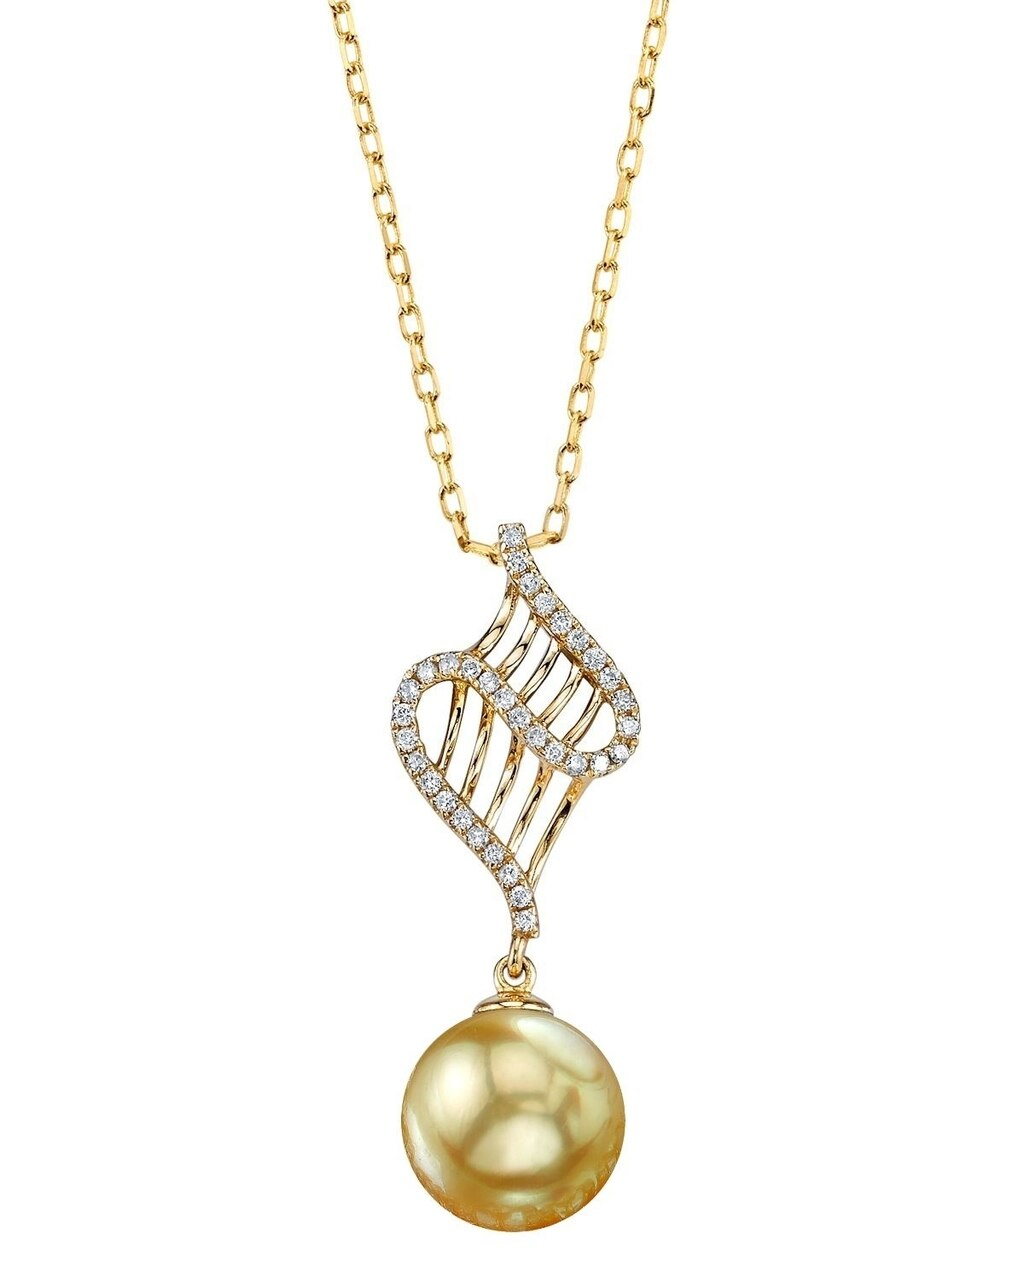 This exquisite pendant features an 9.0-10.0mm Gold South Sea Pearl, handpicked for its luminous luster